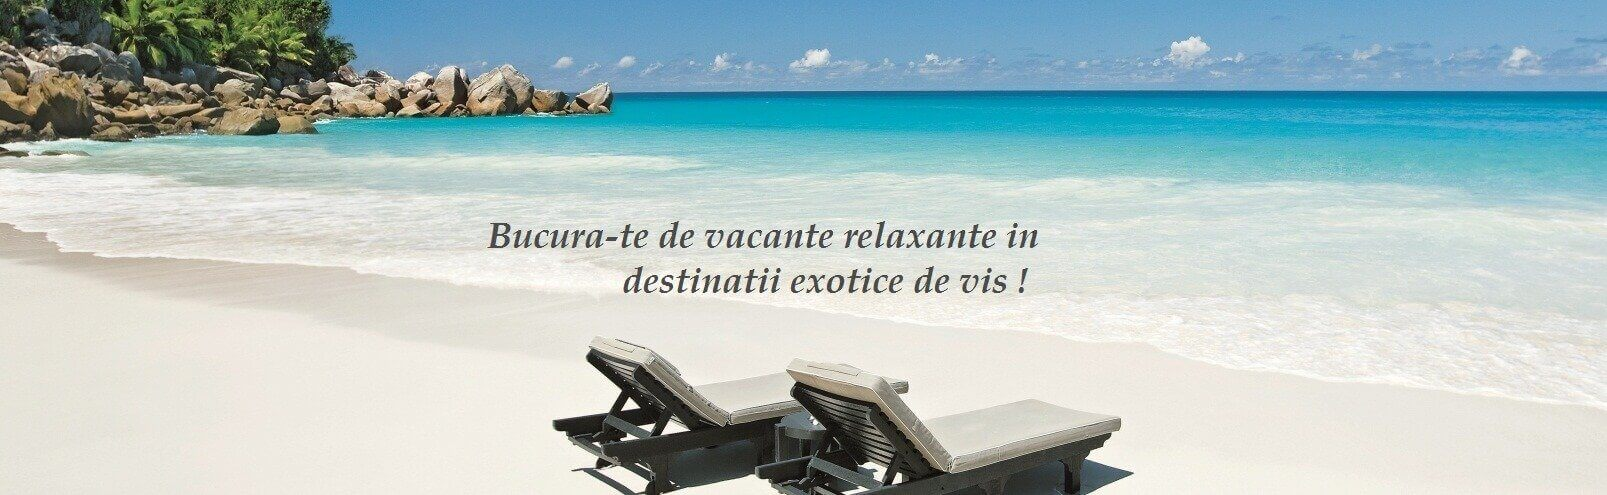 seychelles-1607x495-VACANTE-EXOTICE